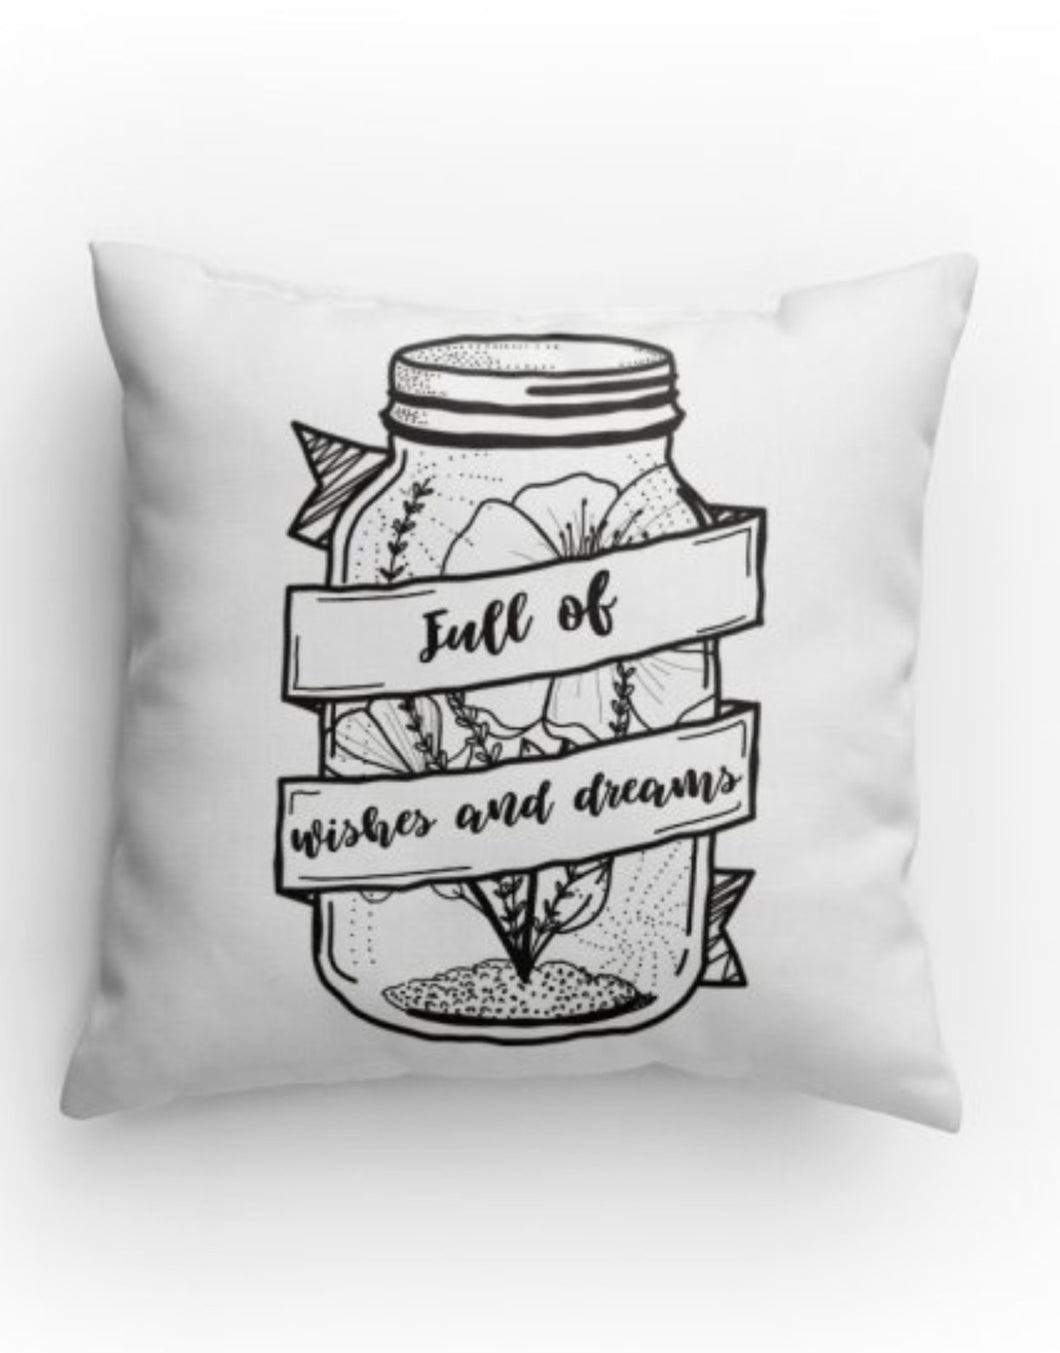 Full of wishes pillow